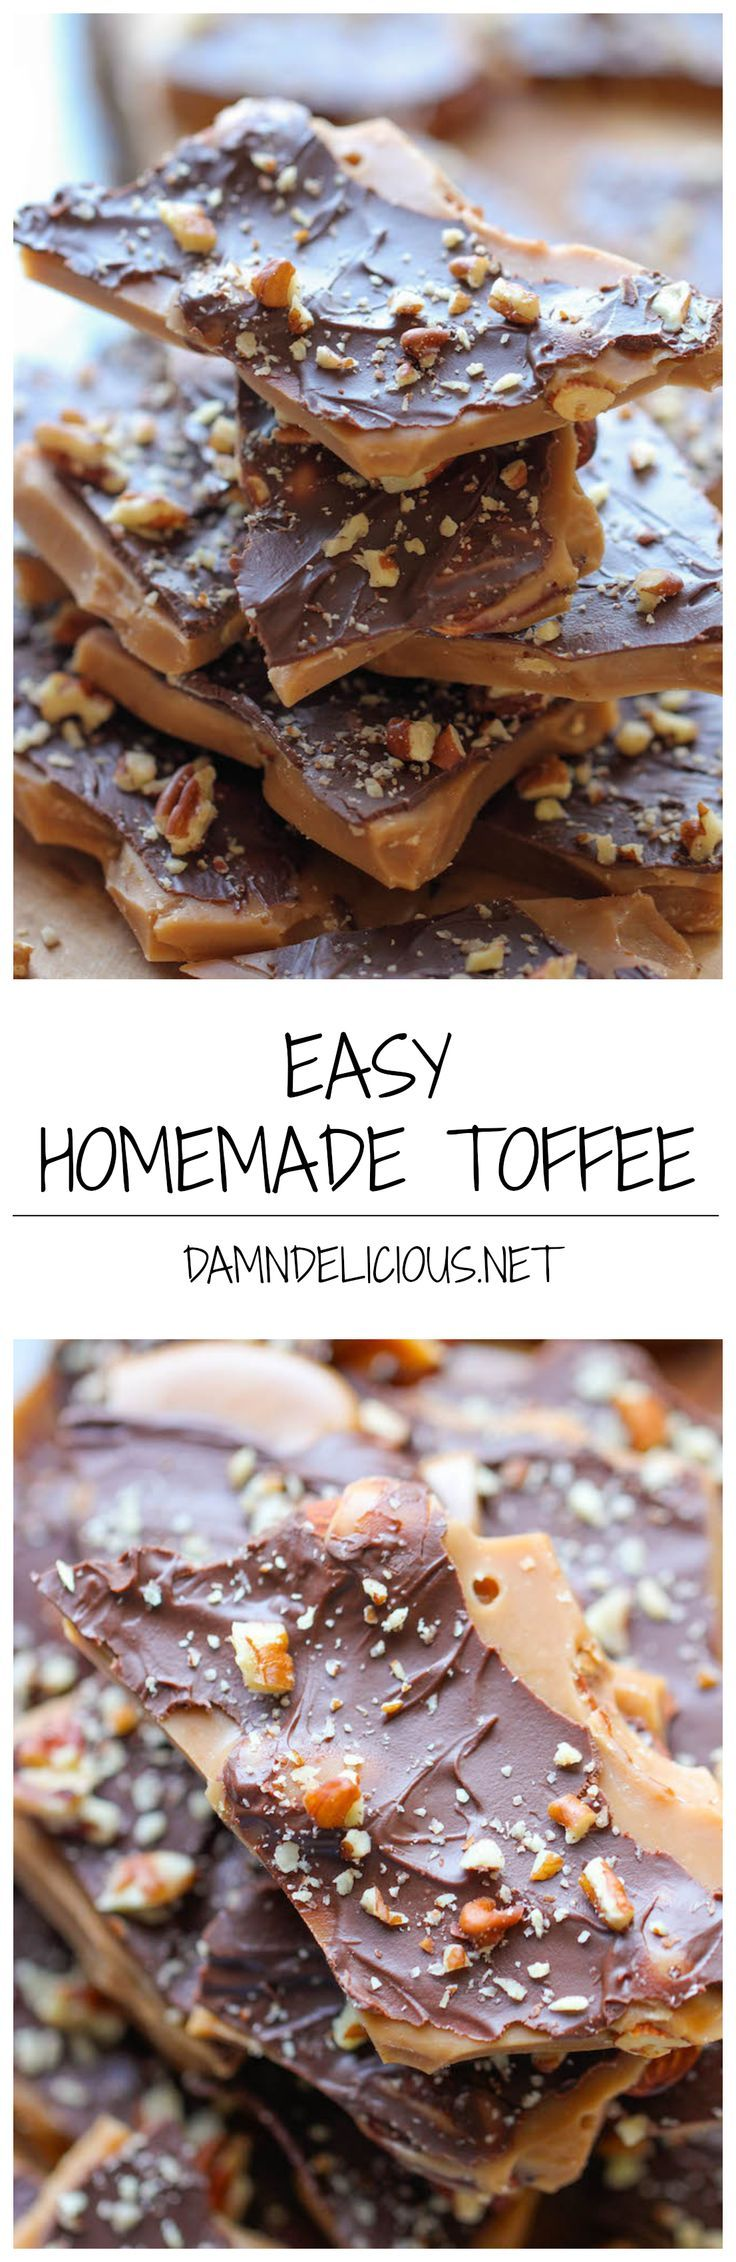 Easy Homemade Toffee - An unbelievably easy, no-fuss, homemade toffee recipe. So addictive, you won't want to share!